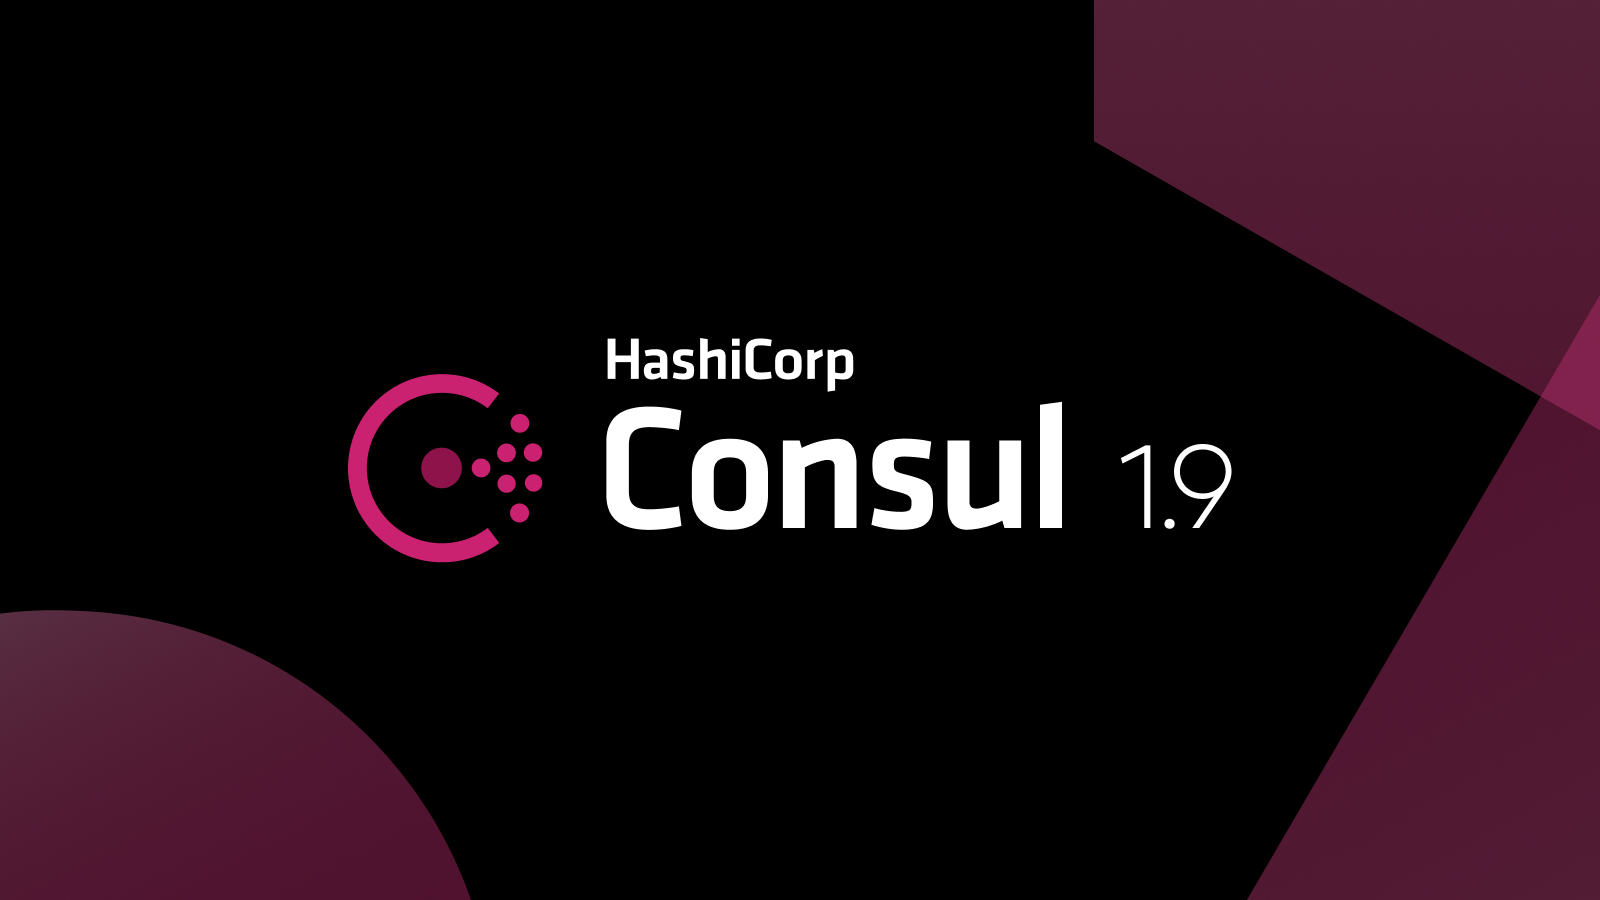 Announcing HashiCorp Consul 1.9